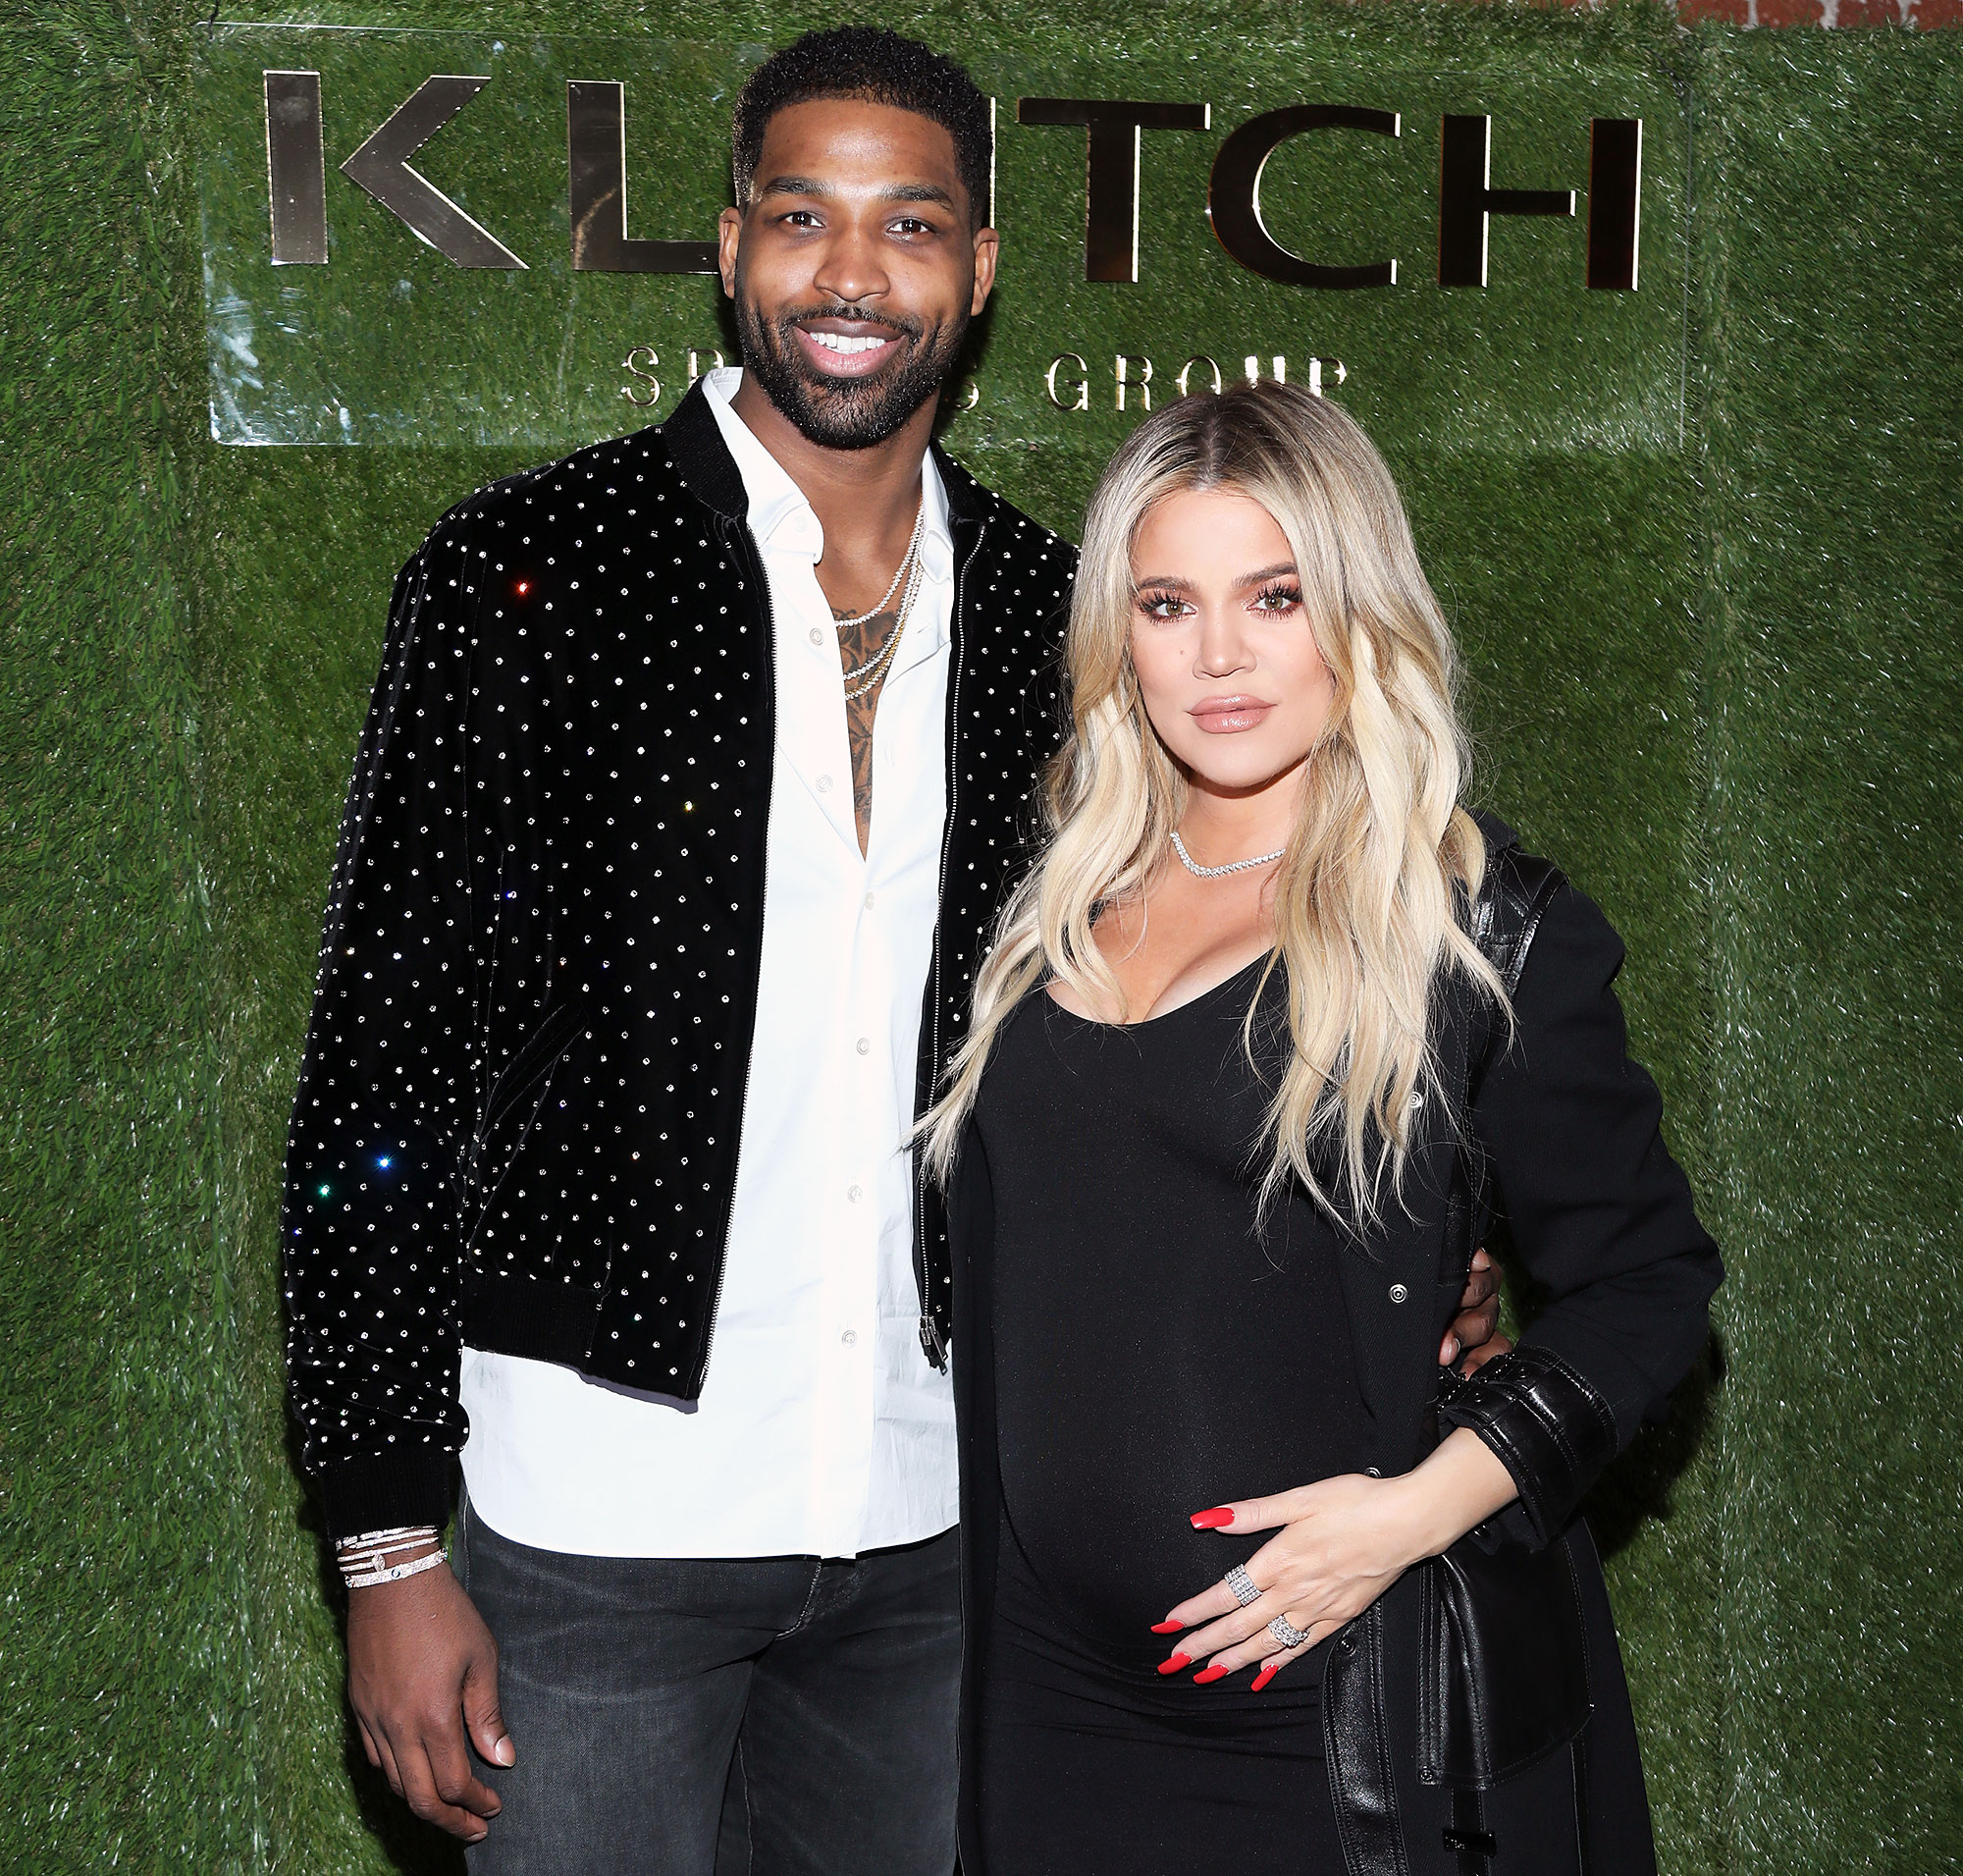 Tristan Thompson and Pregnant Khloe Kardashian at an Event Not Live-Tweeting KUWTK Episode with Tristan Thompson Scandal